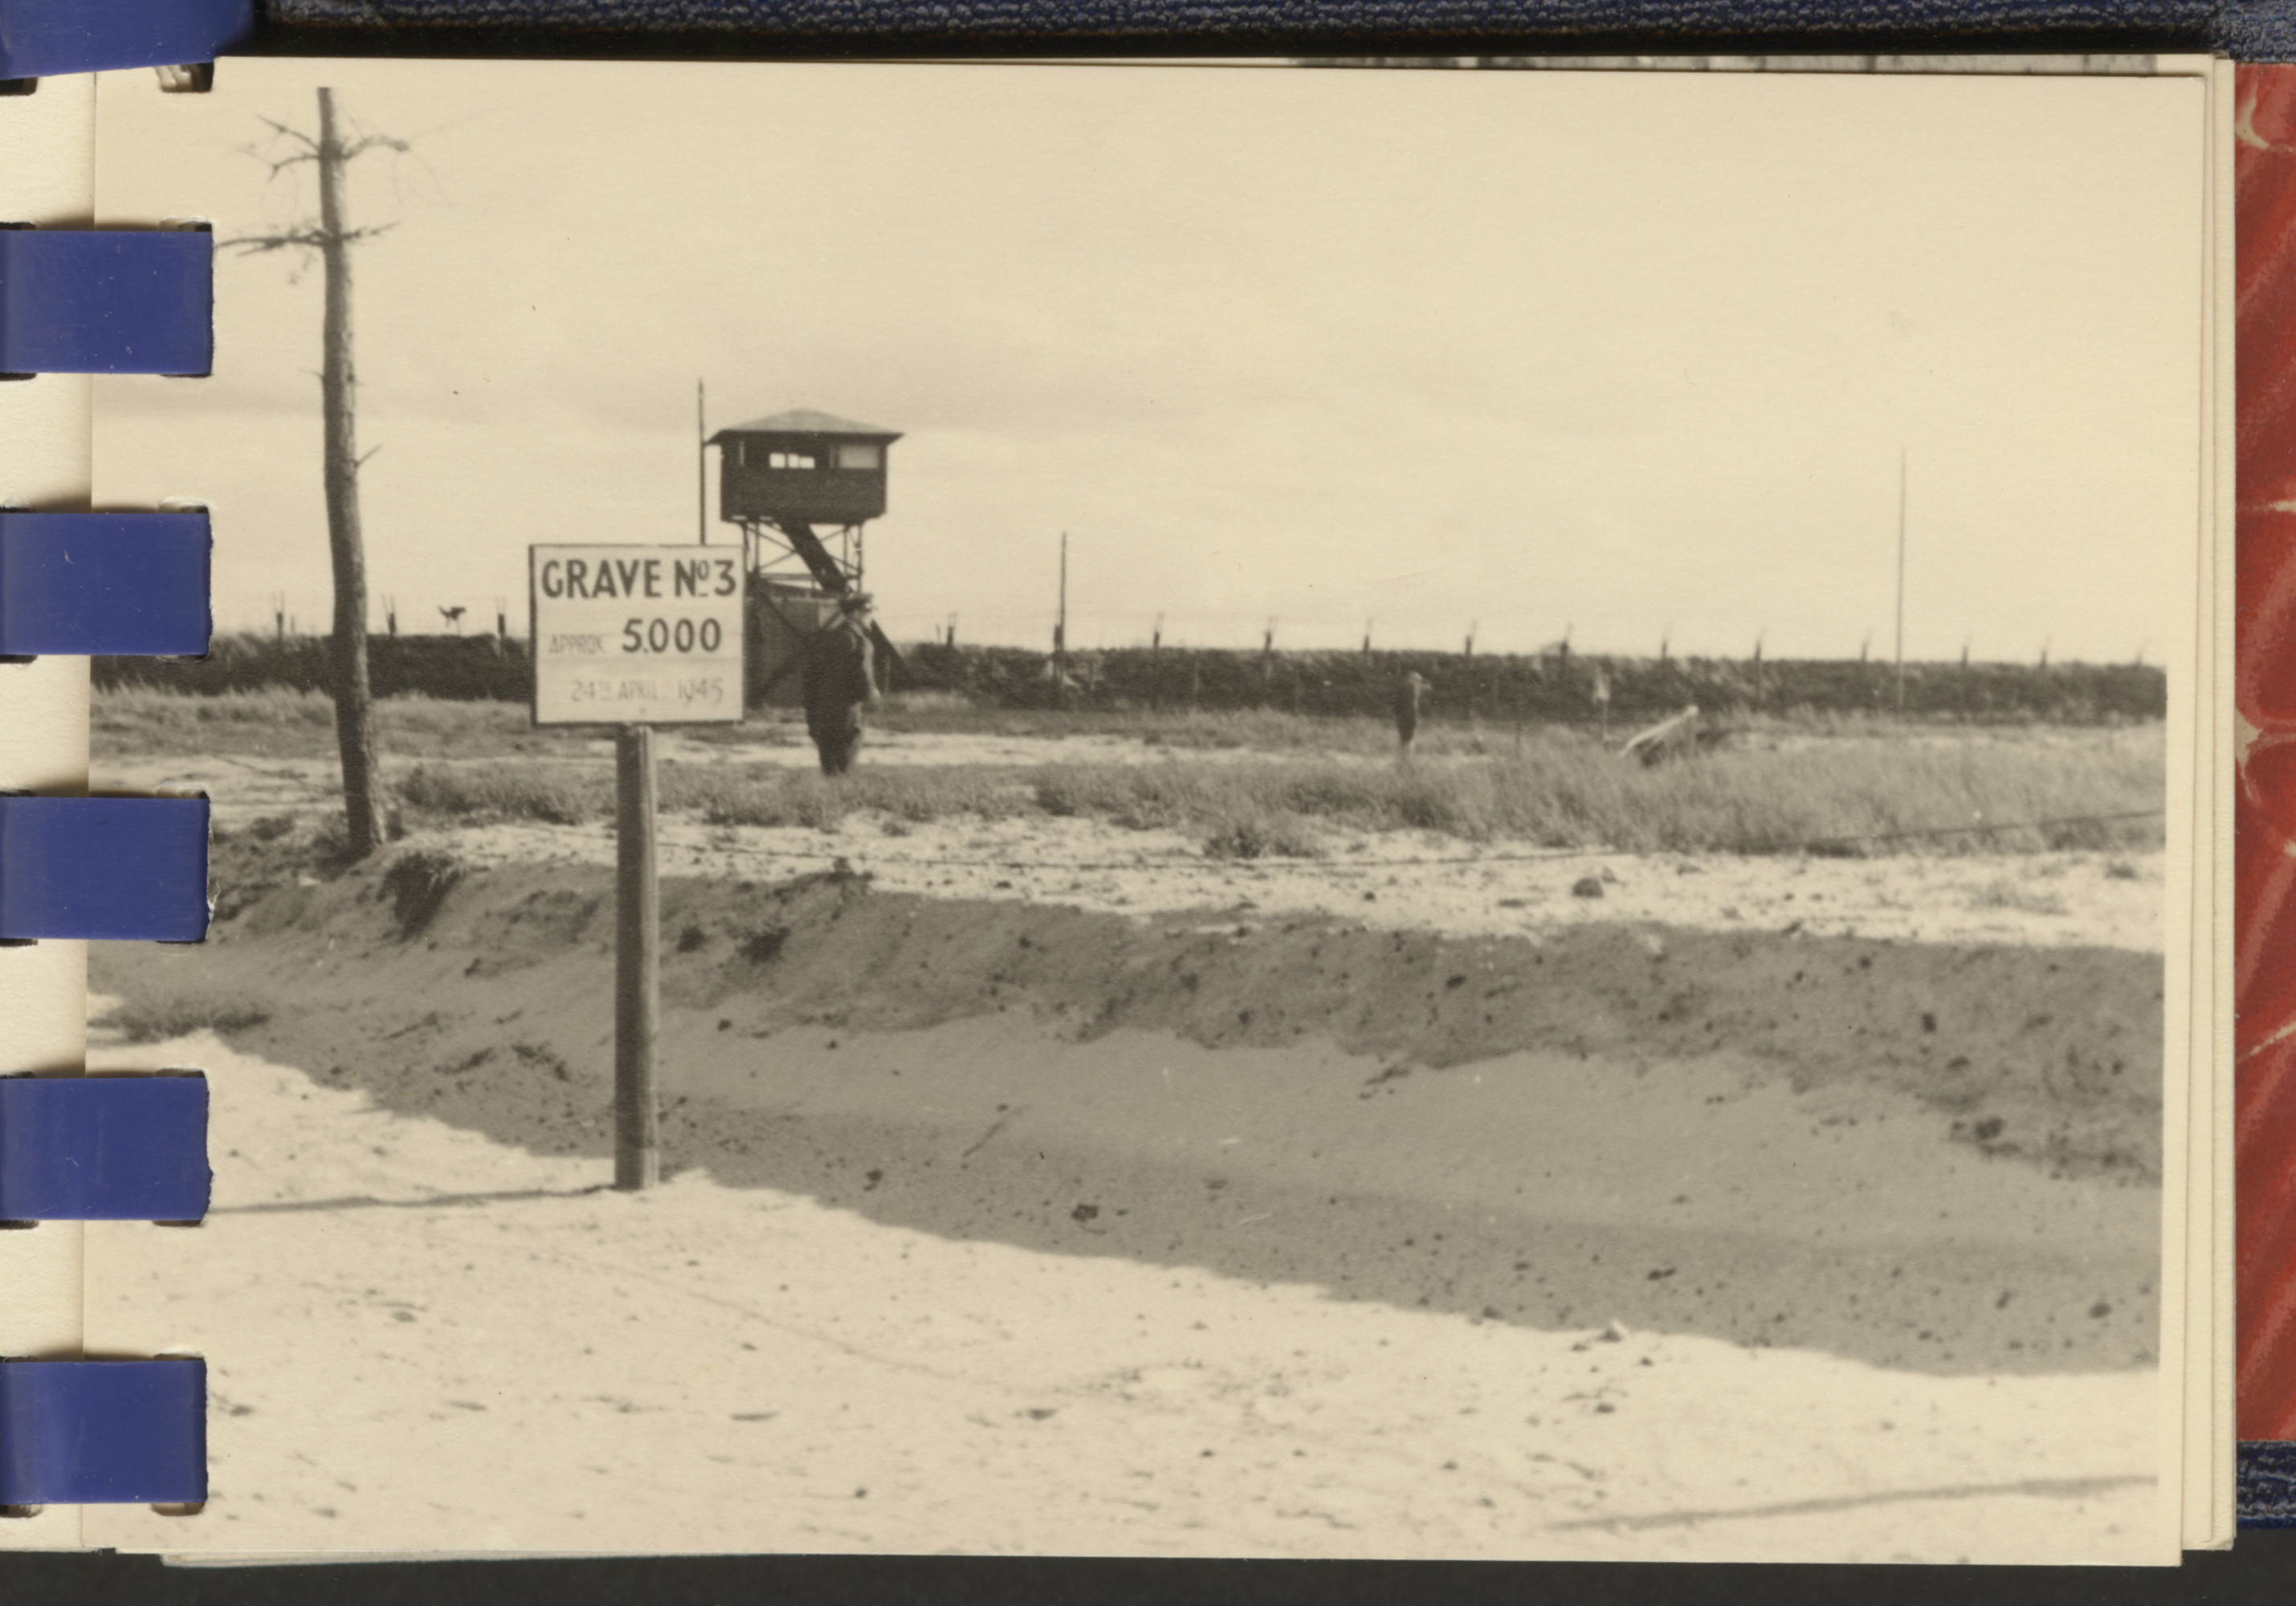 One page from a small photograph booklet containing images of Bergen-Belsen shortly after liberation.  A sign indicates Grave No. 3, where 5000 victims were buried.